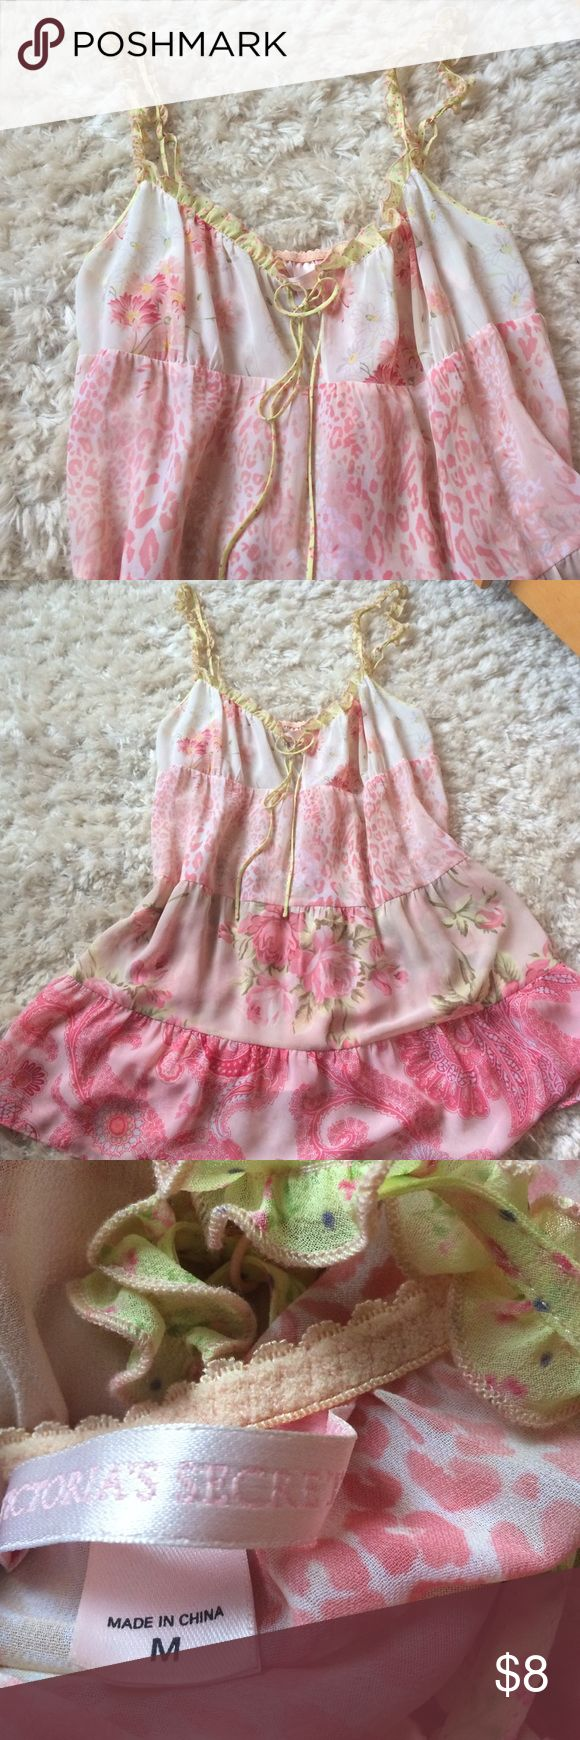 VS neglige Pretty in pink! Cute little neglige by Victoria's Secret. Sheer/see through material. Size M GUC So soft and girl🌷 Victoria's Secret Intimates & Sleepwear